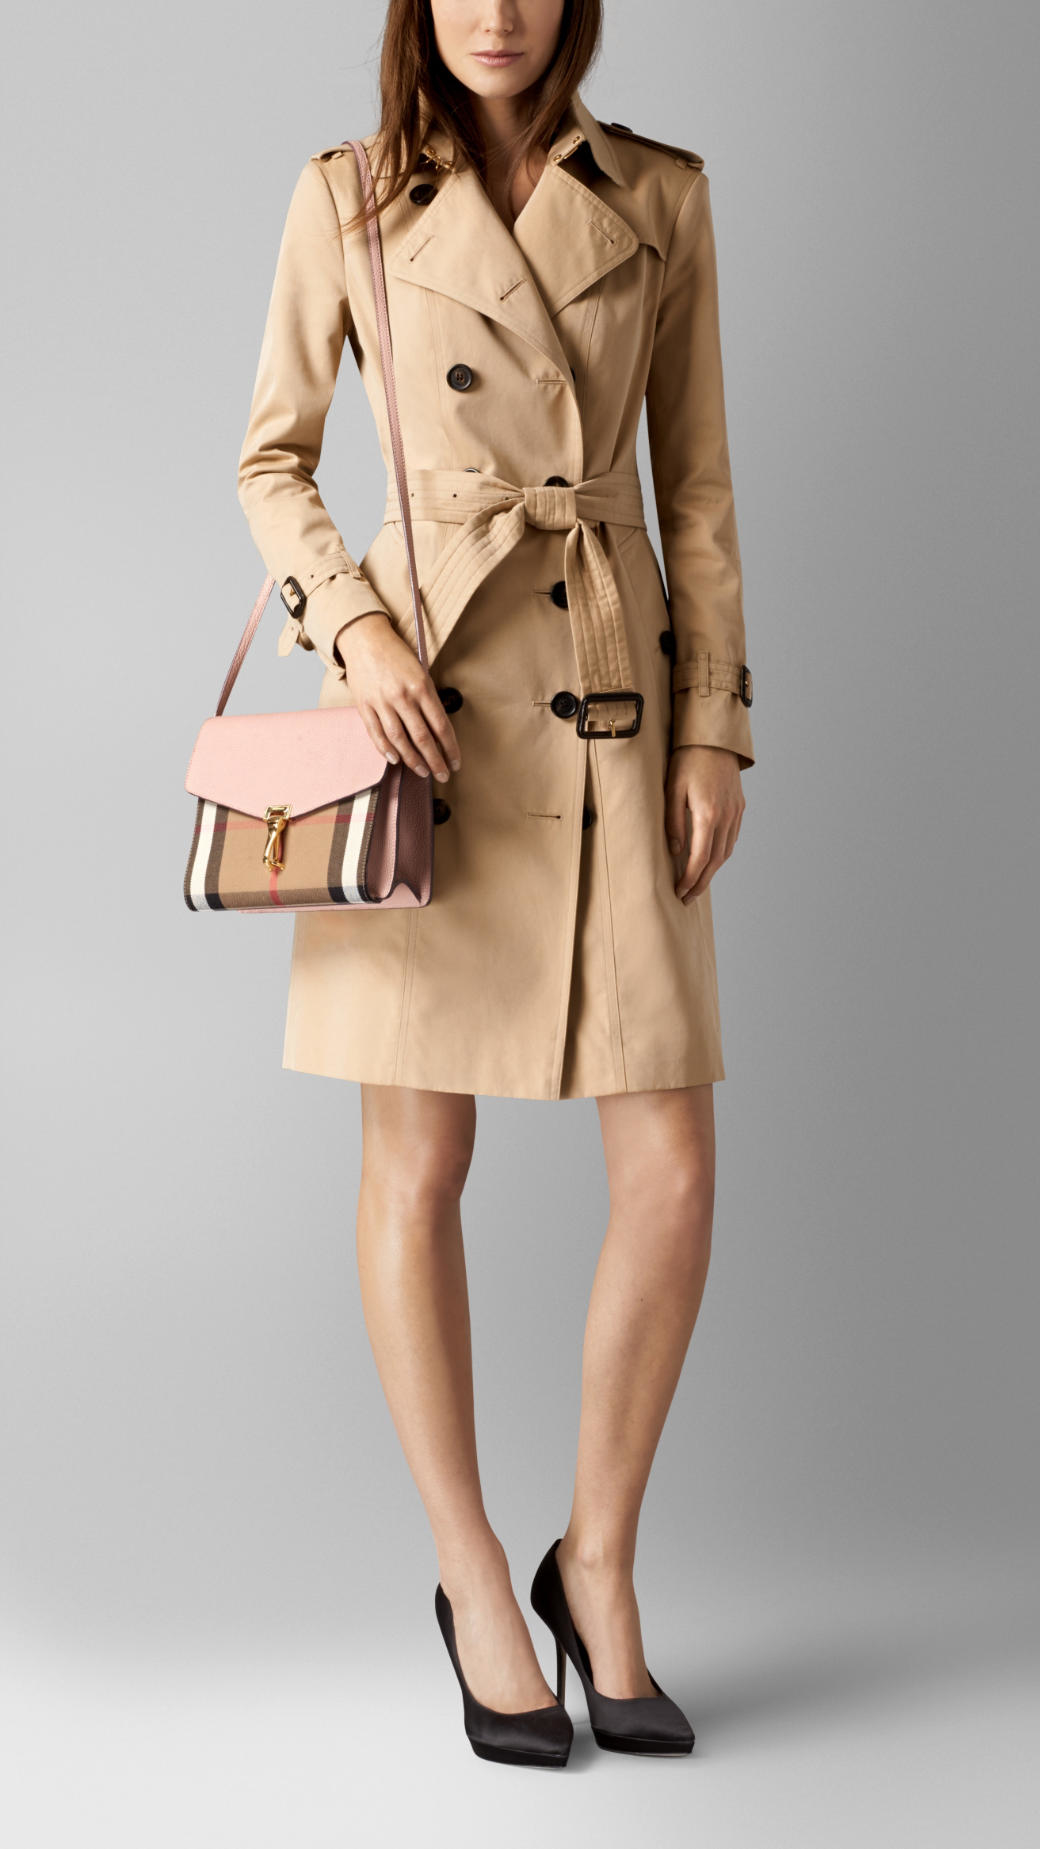 Lyst - Burberry Small Leather and House-Check Cross-Body Bag in Natural 790e46b322e2b